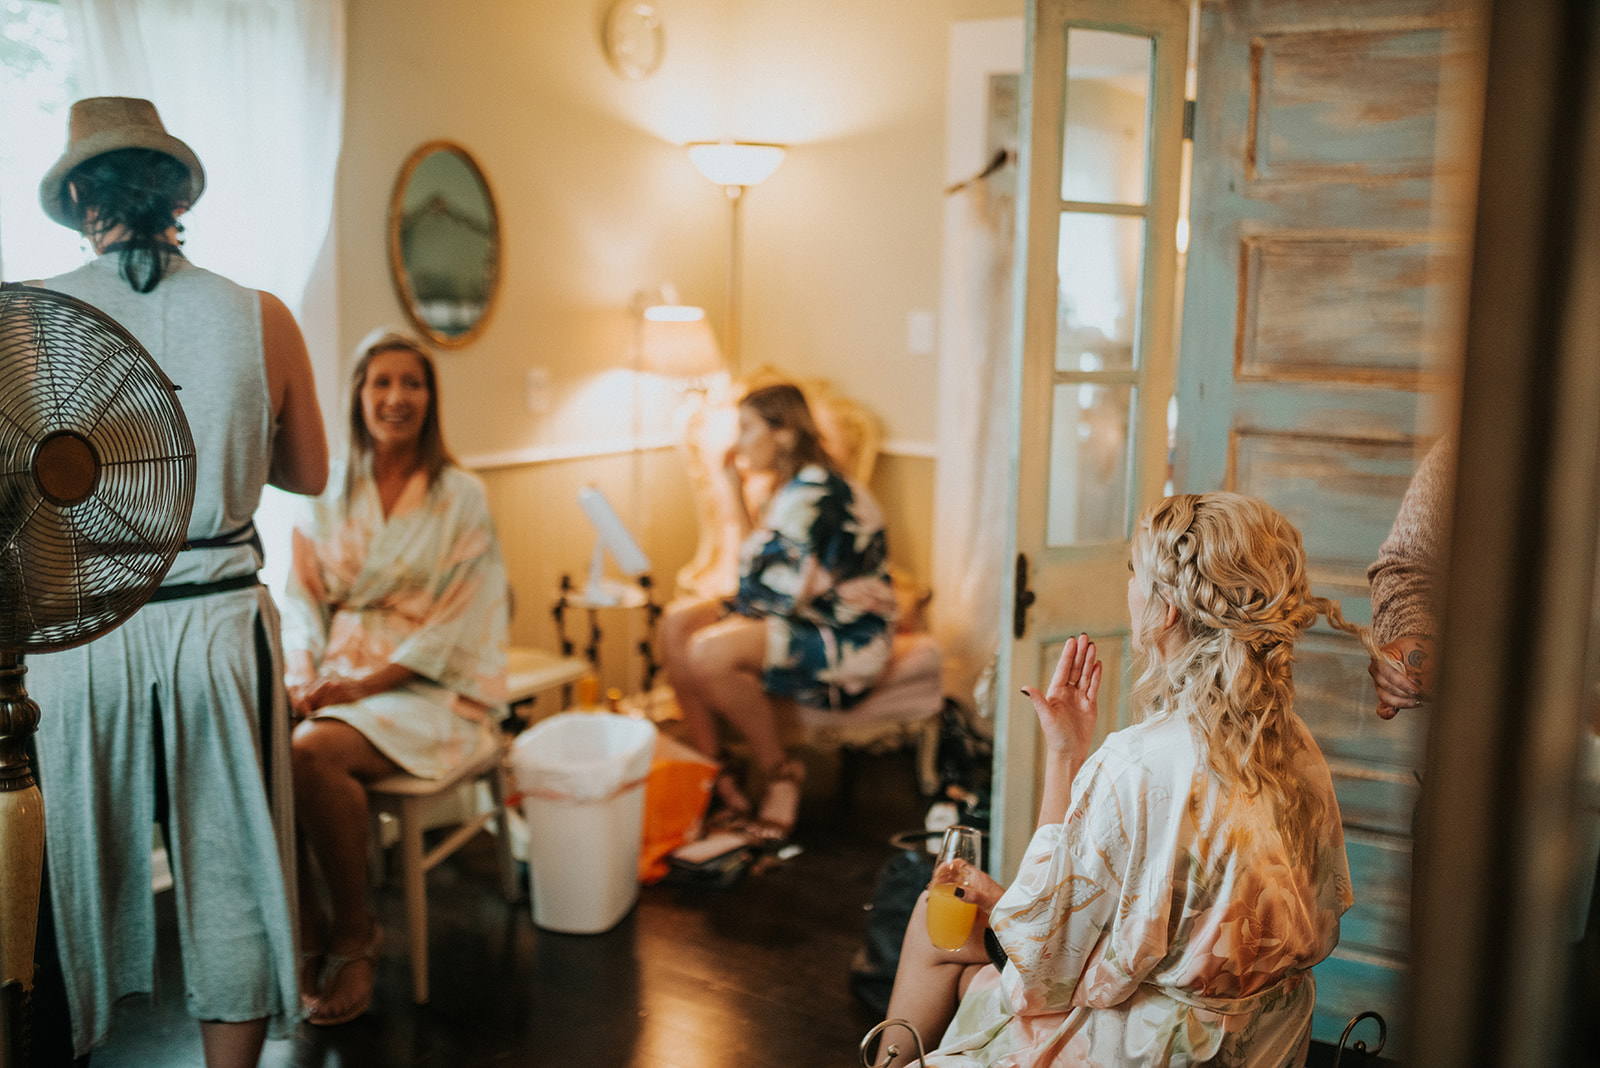 overthevineswisconsinwedding_0045.jpg